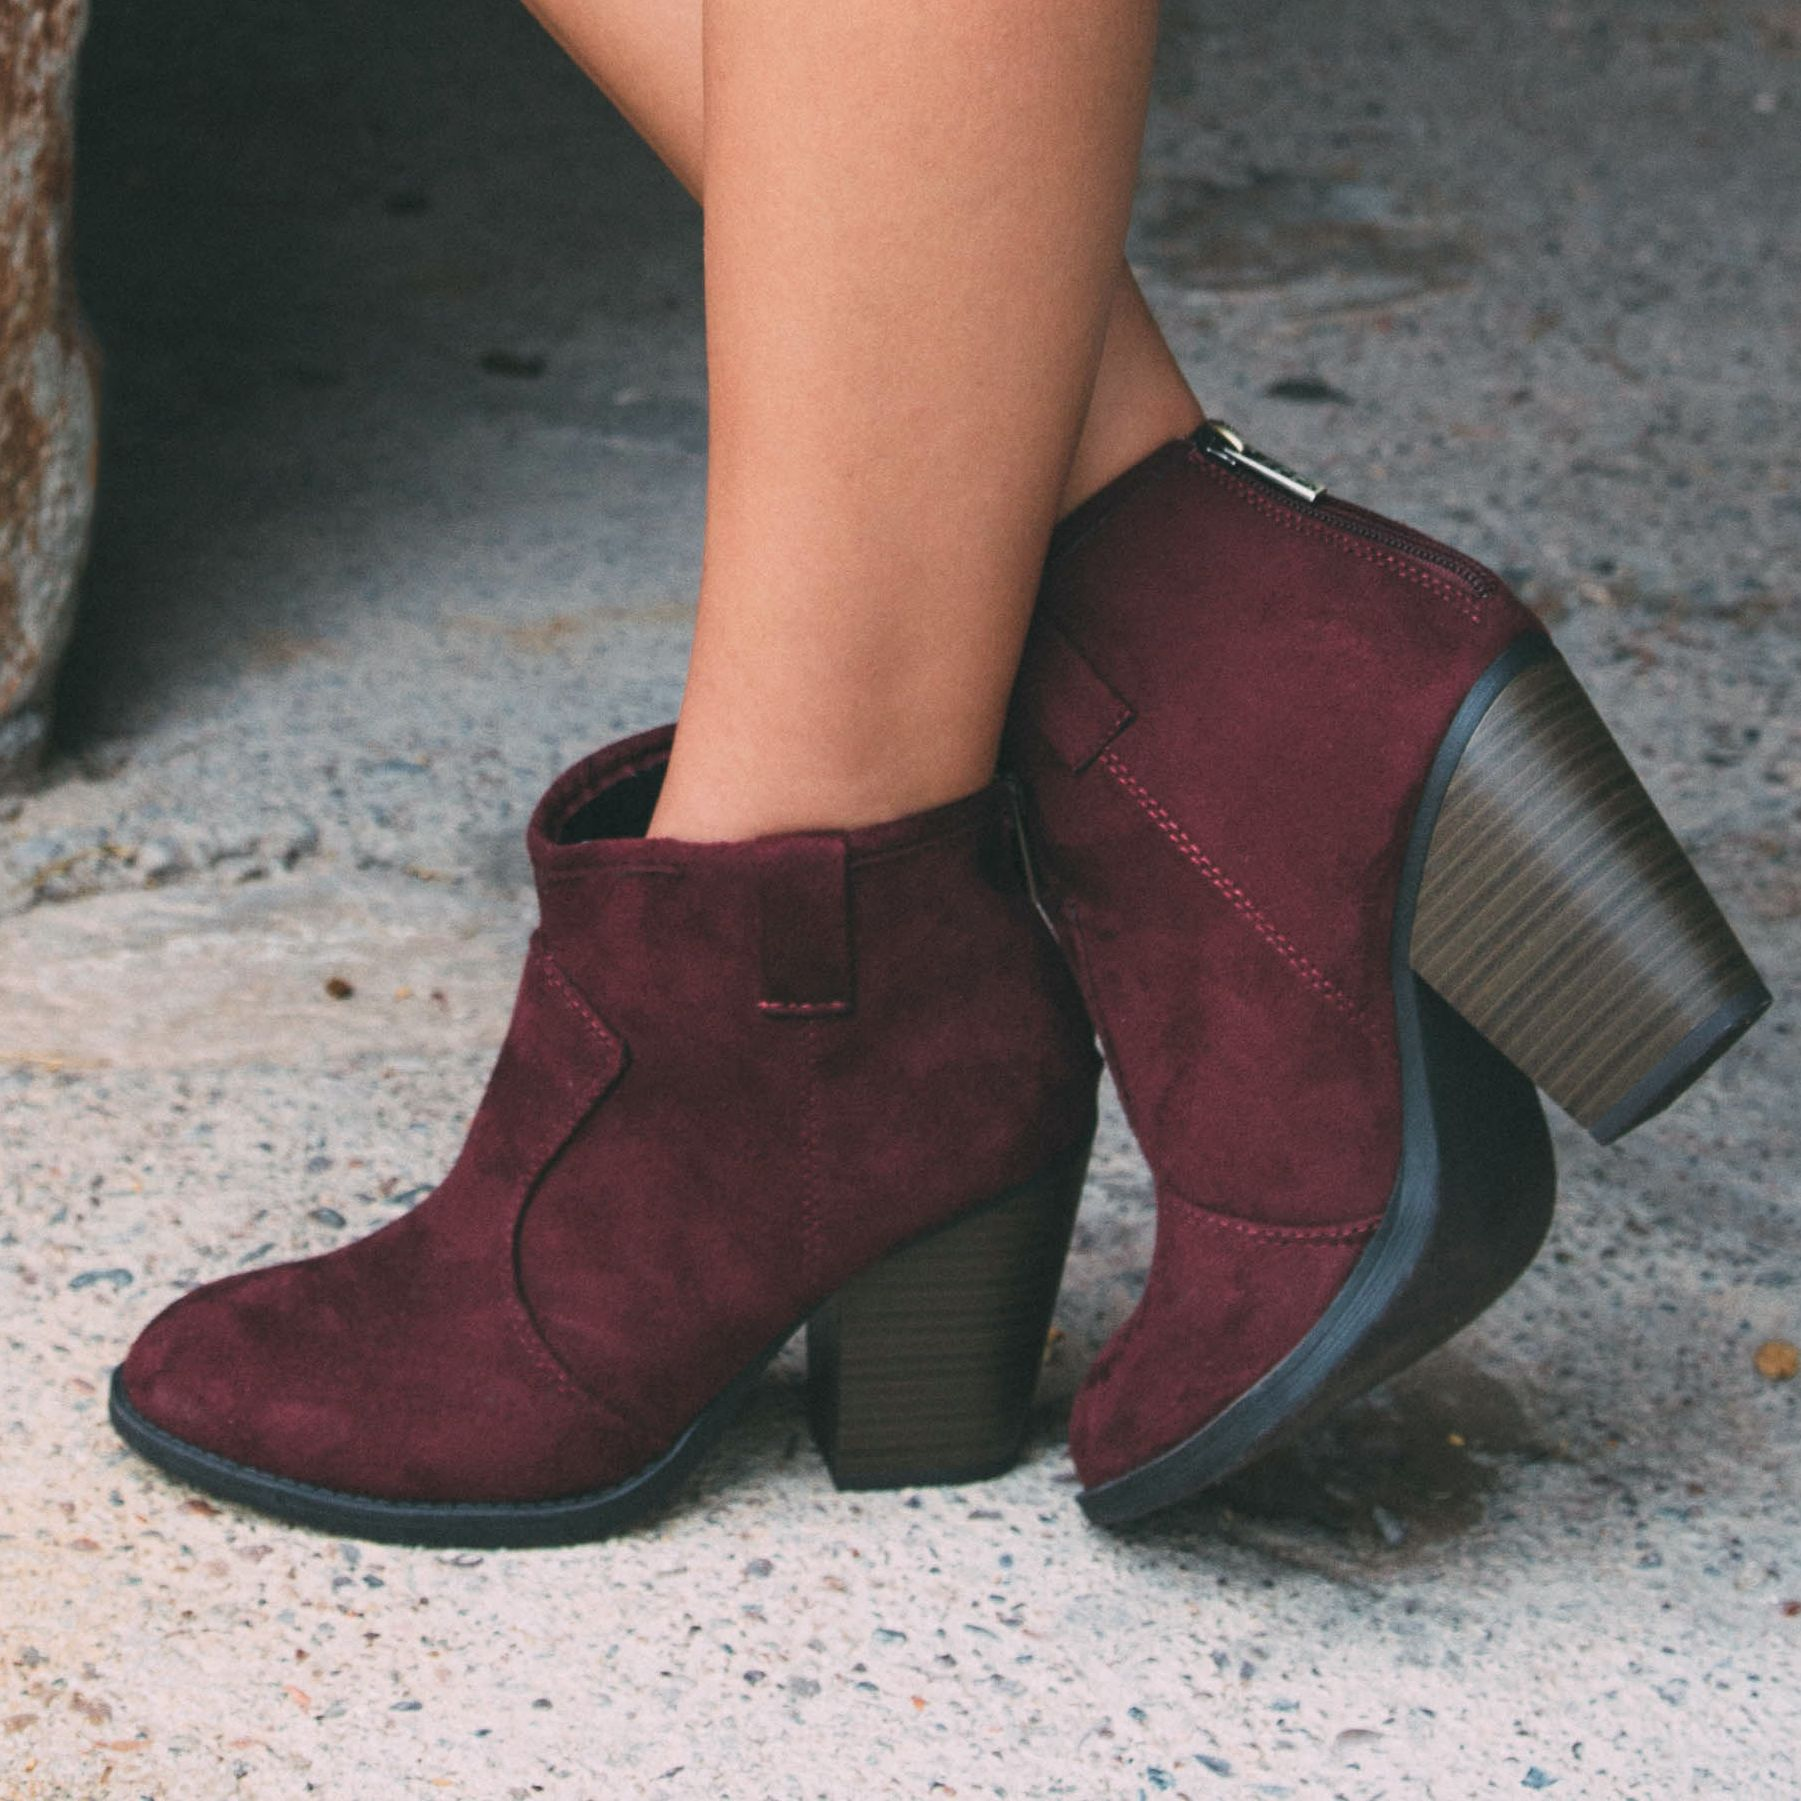 Pin by kaylie smith on if the shoe fitsbuy it pinterest